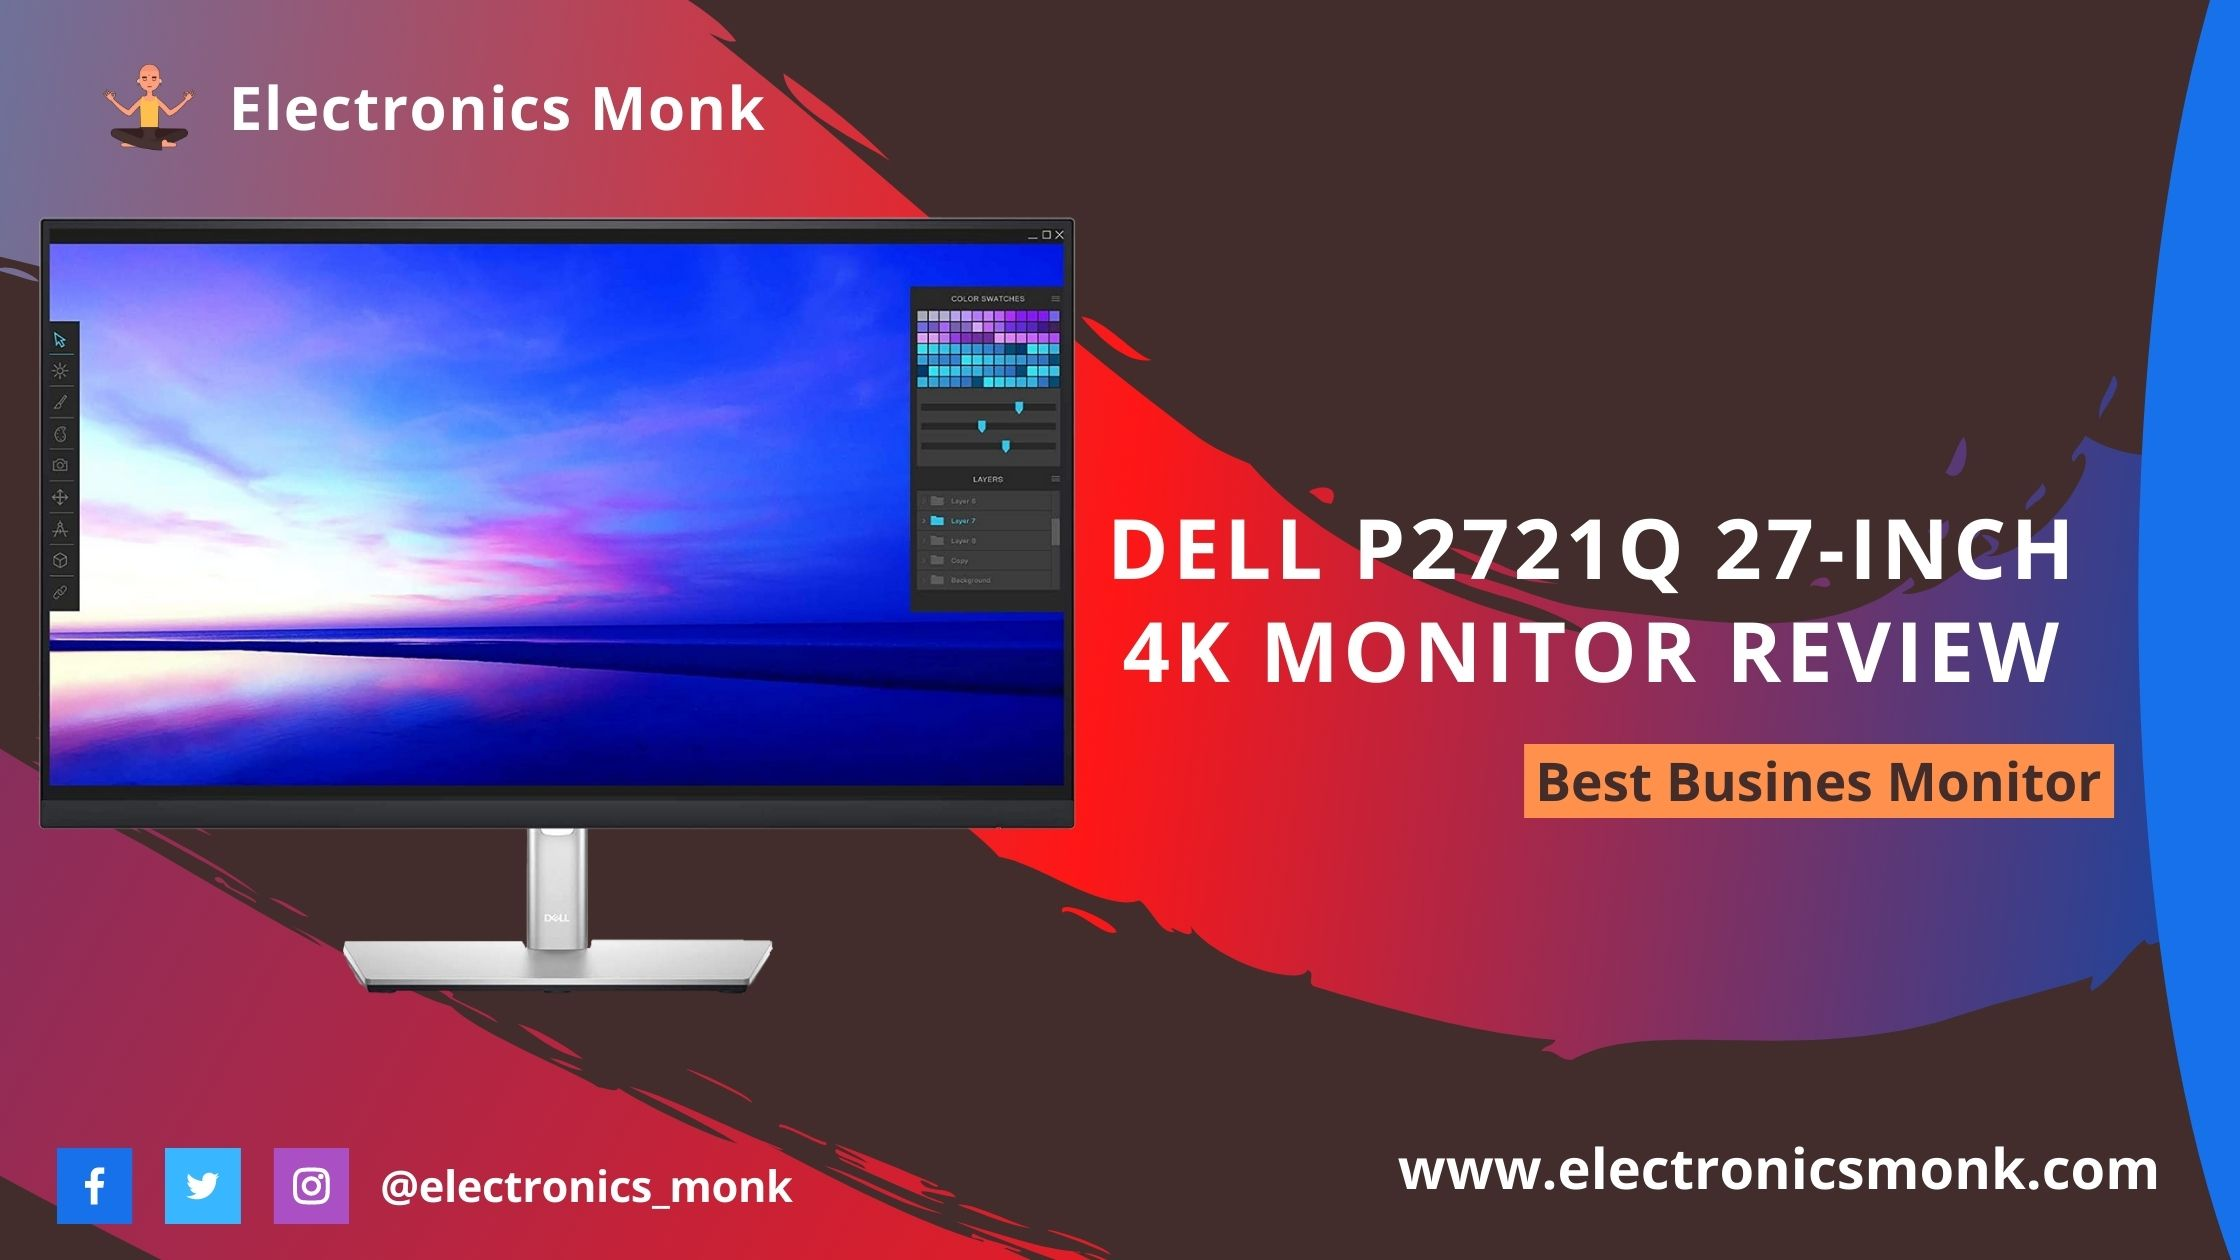 Dell P2721Q 27-inch 4K Monitor Review